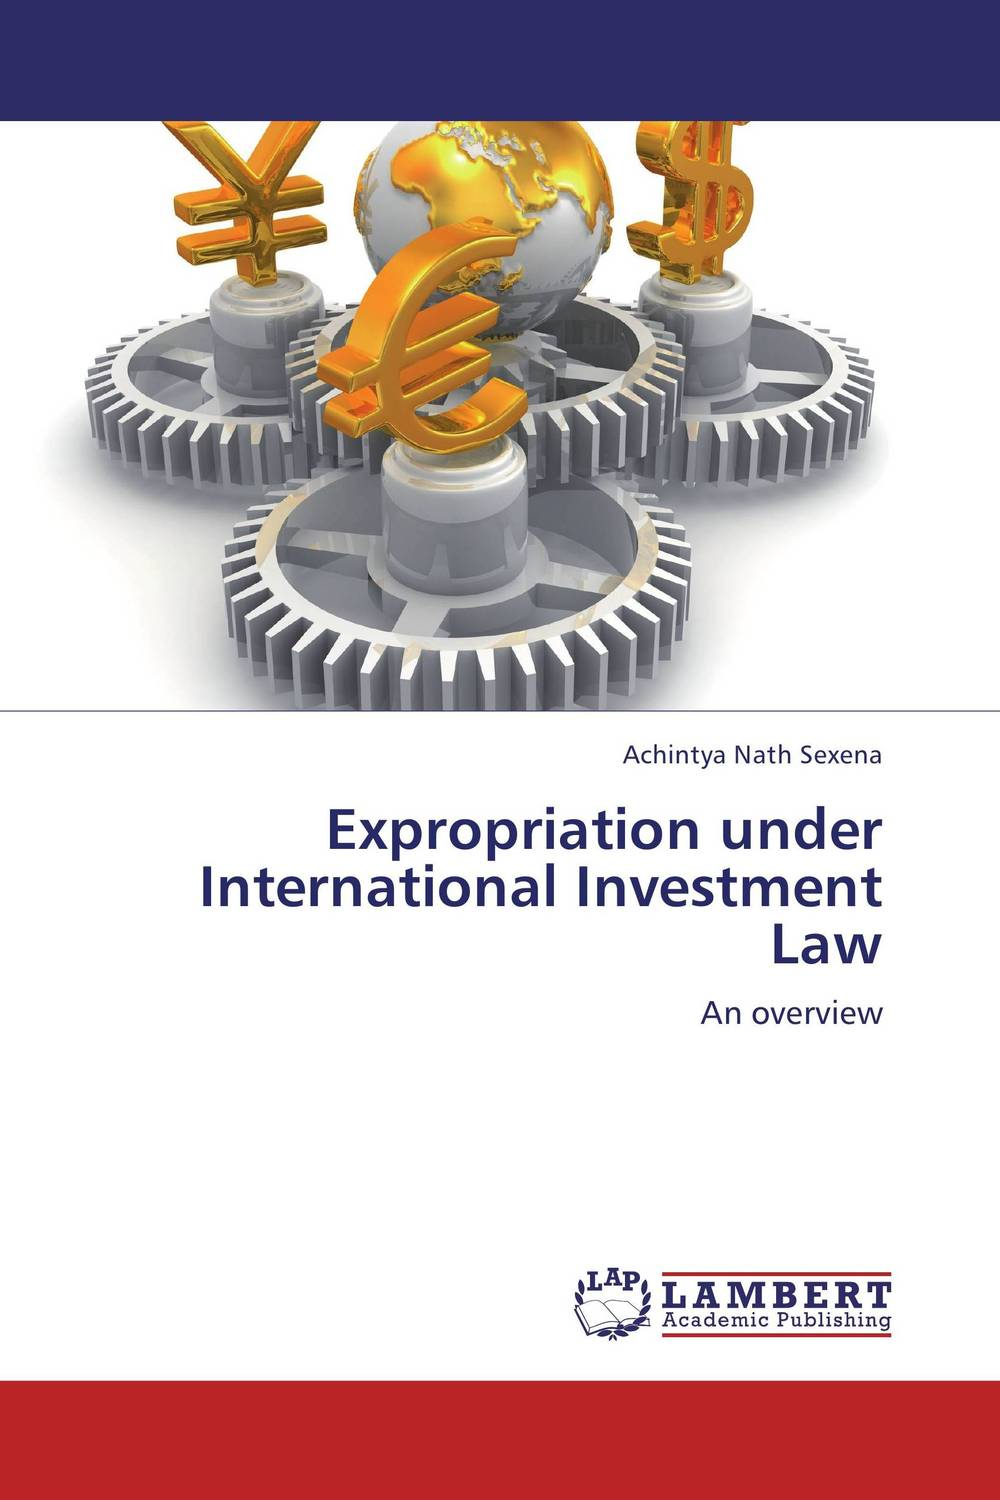 Expropriation under International Investment Law tobias h keller telecommunications law under the light of convergence